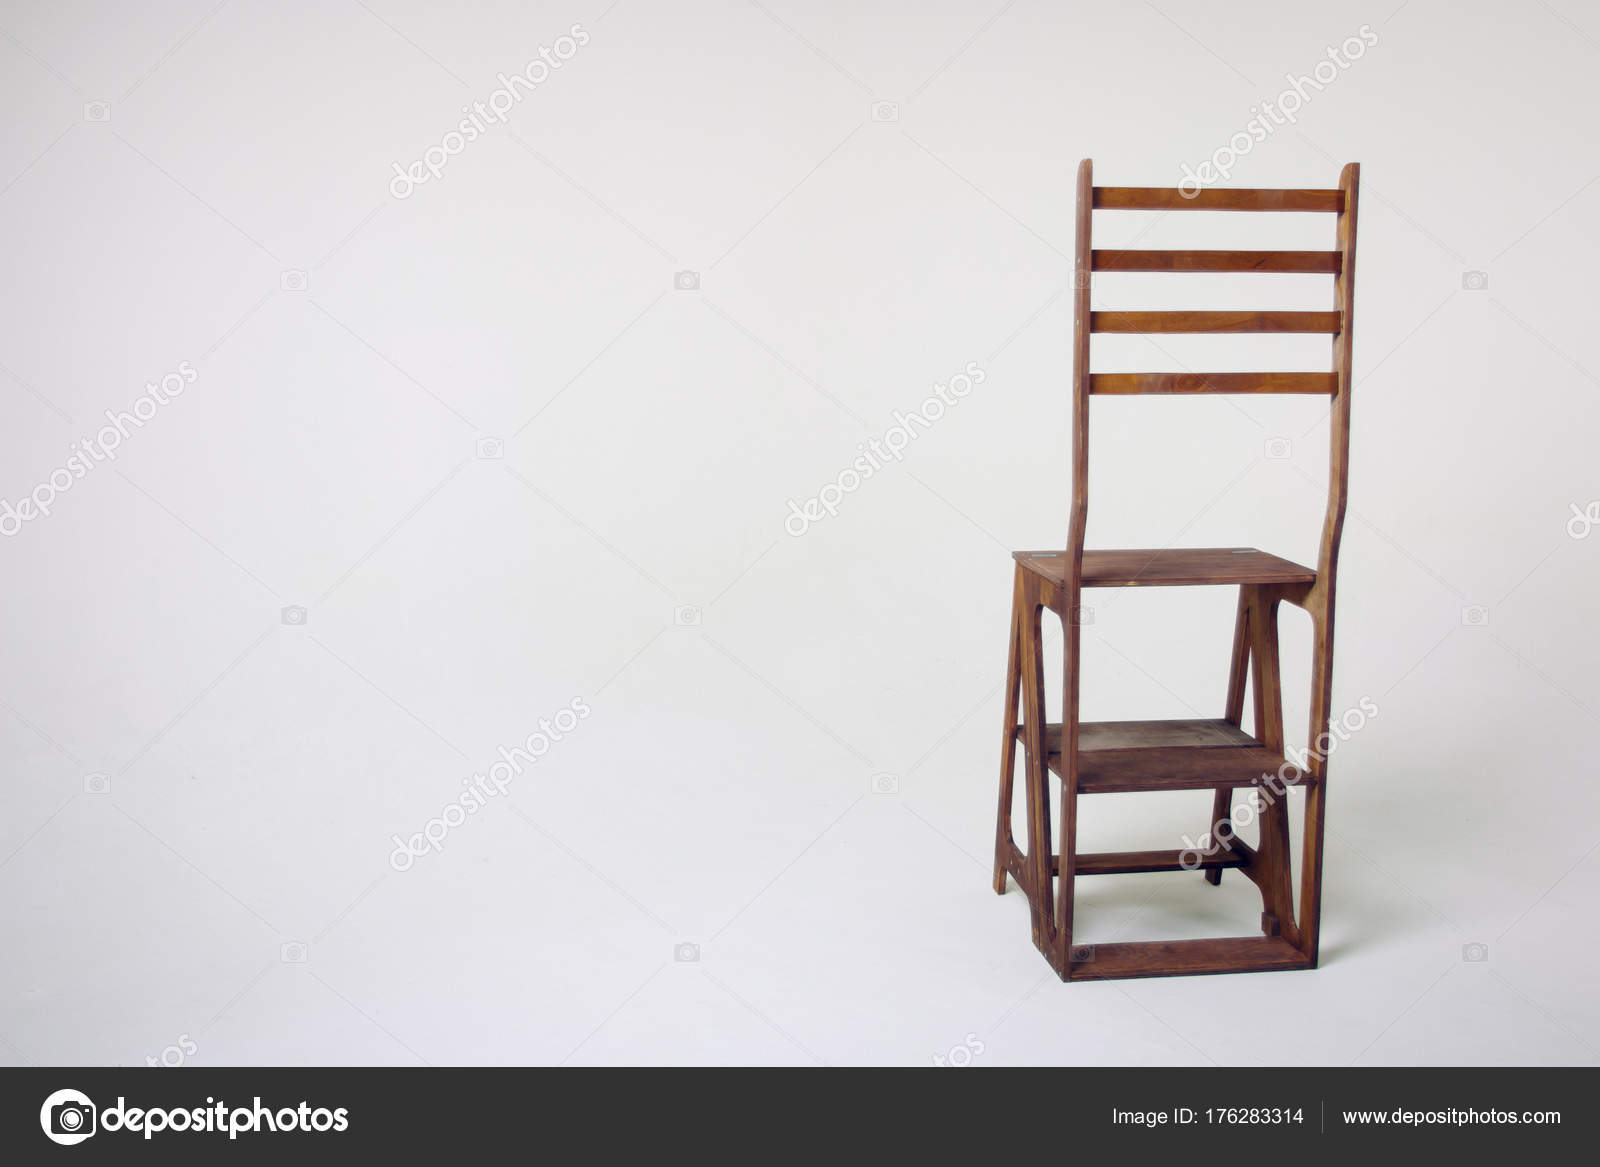 unusual wooden chair restoration hardware dining chairs white background stock photo c maratj34